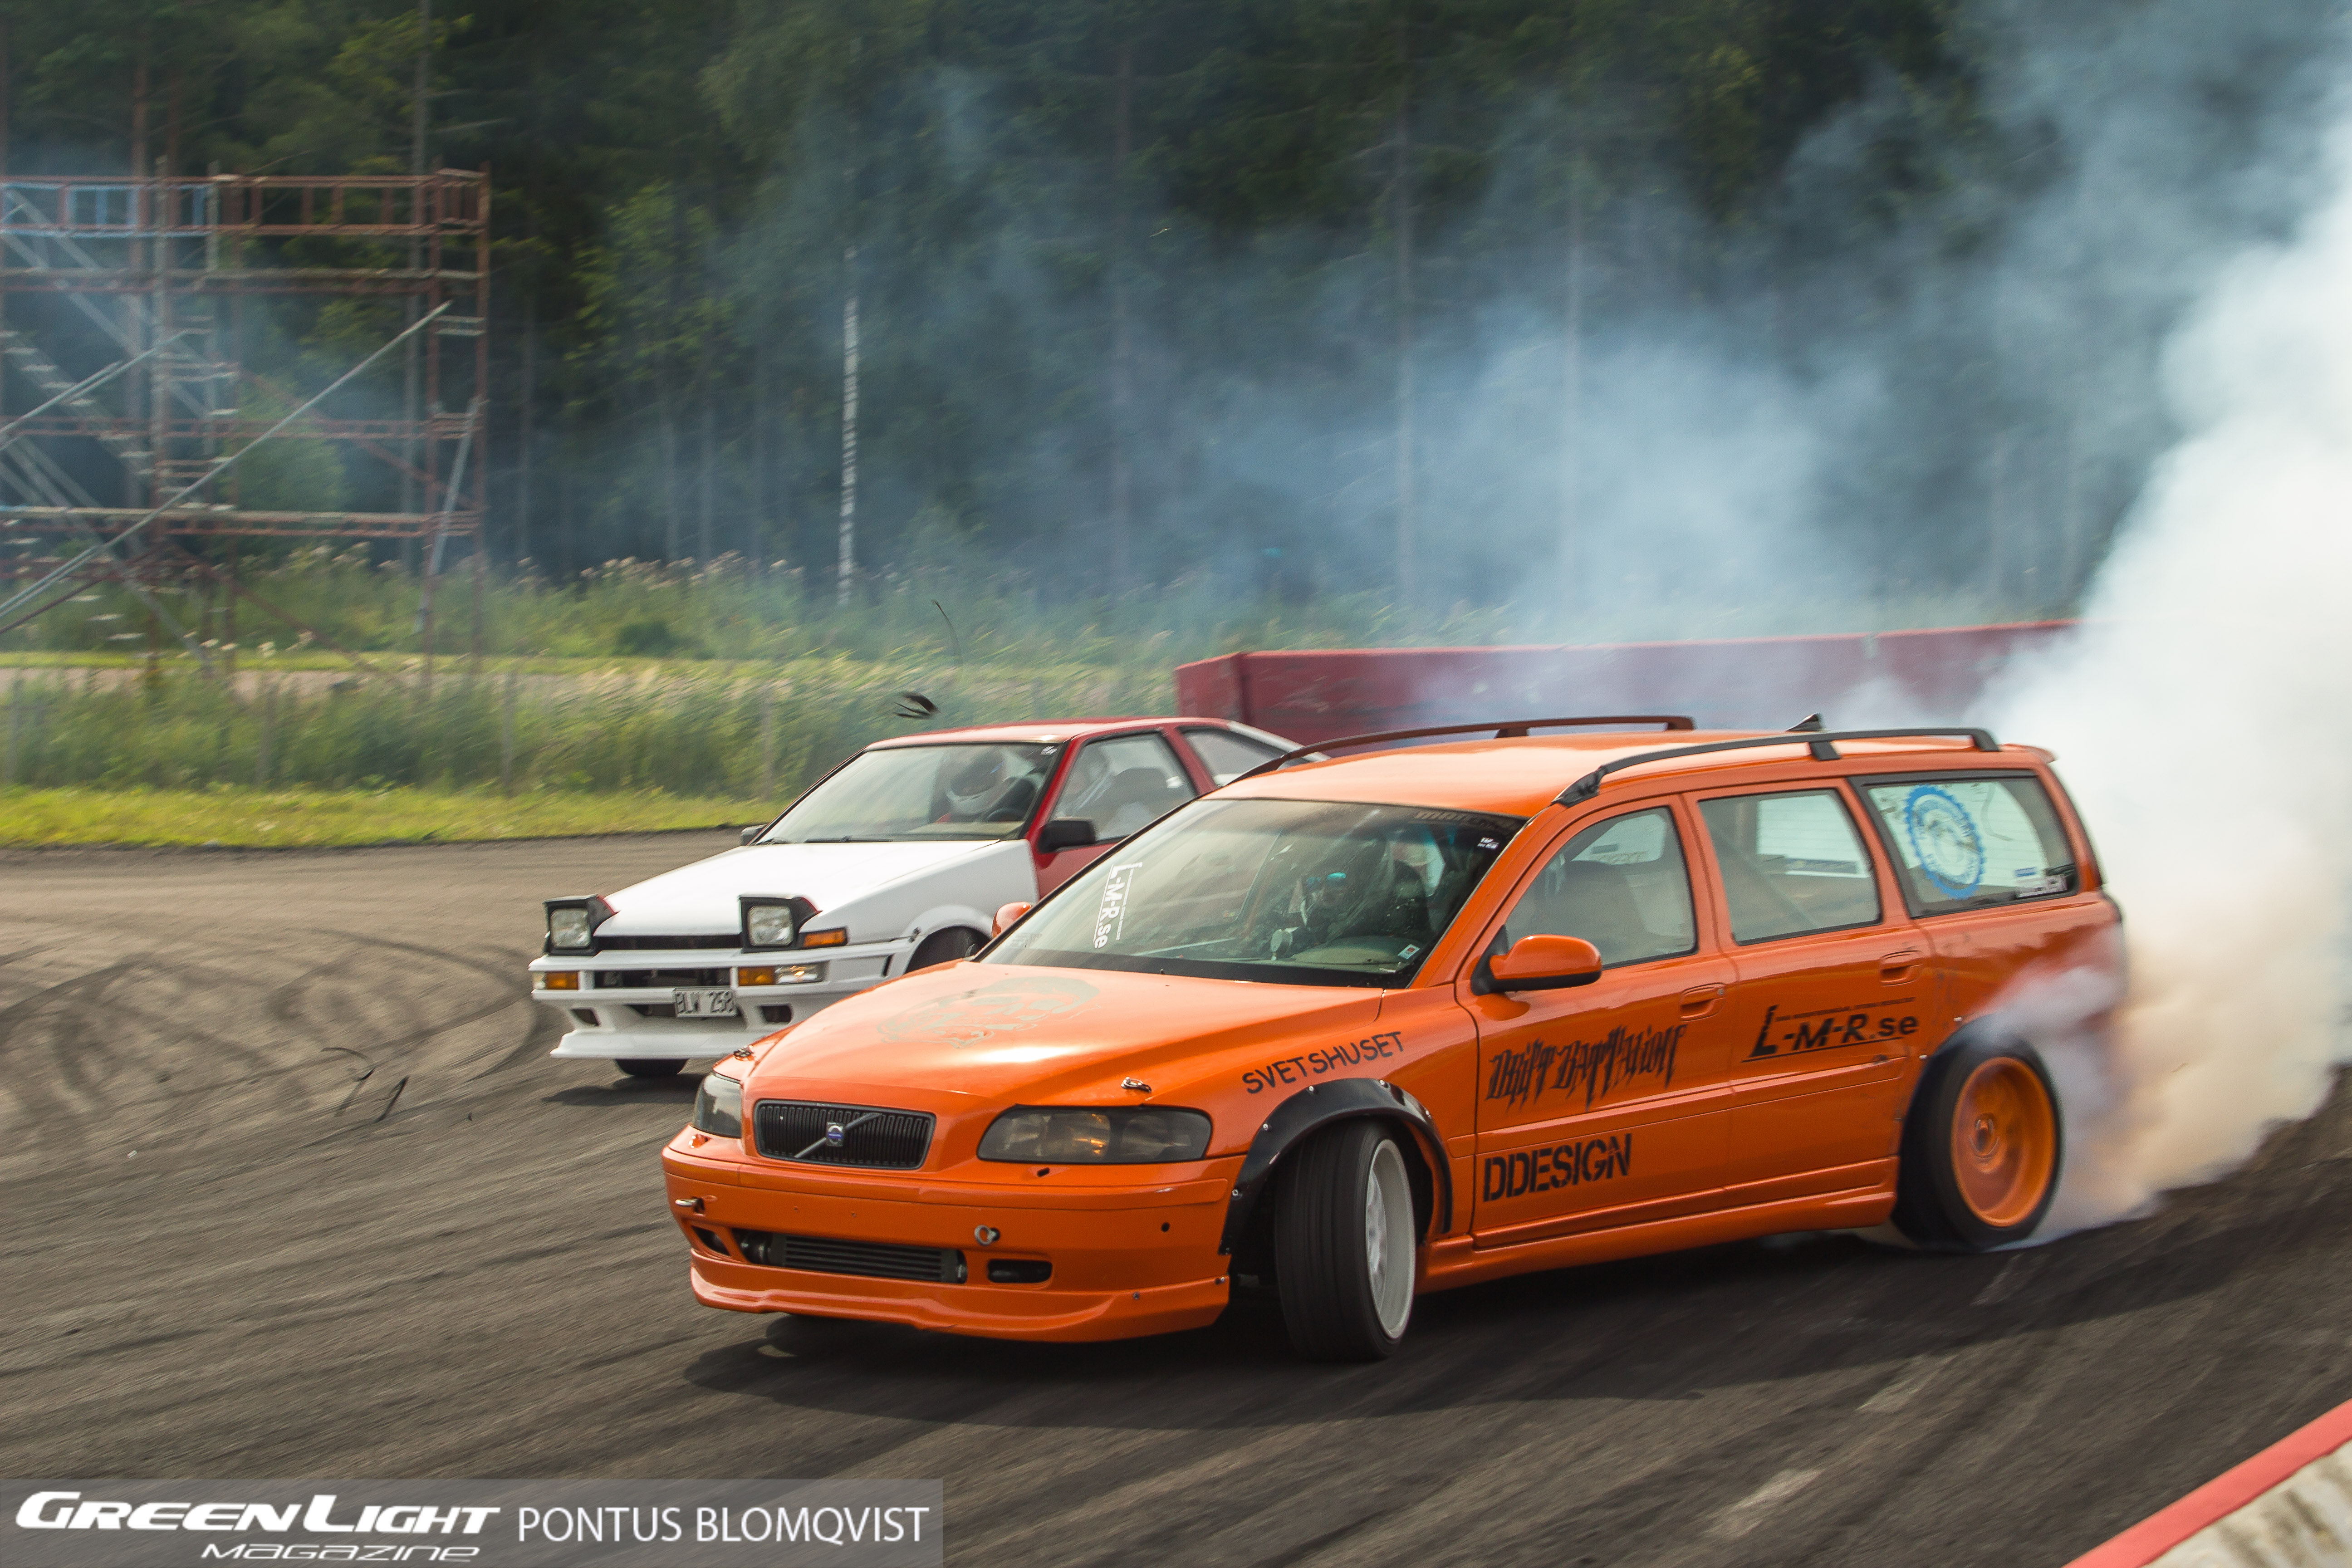 Epic Tandem Battle Between A Volvo And A Trueno